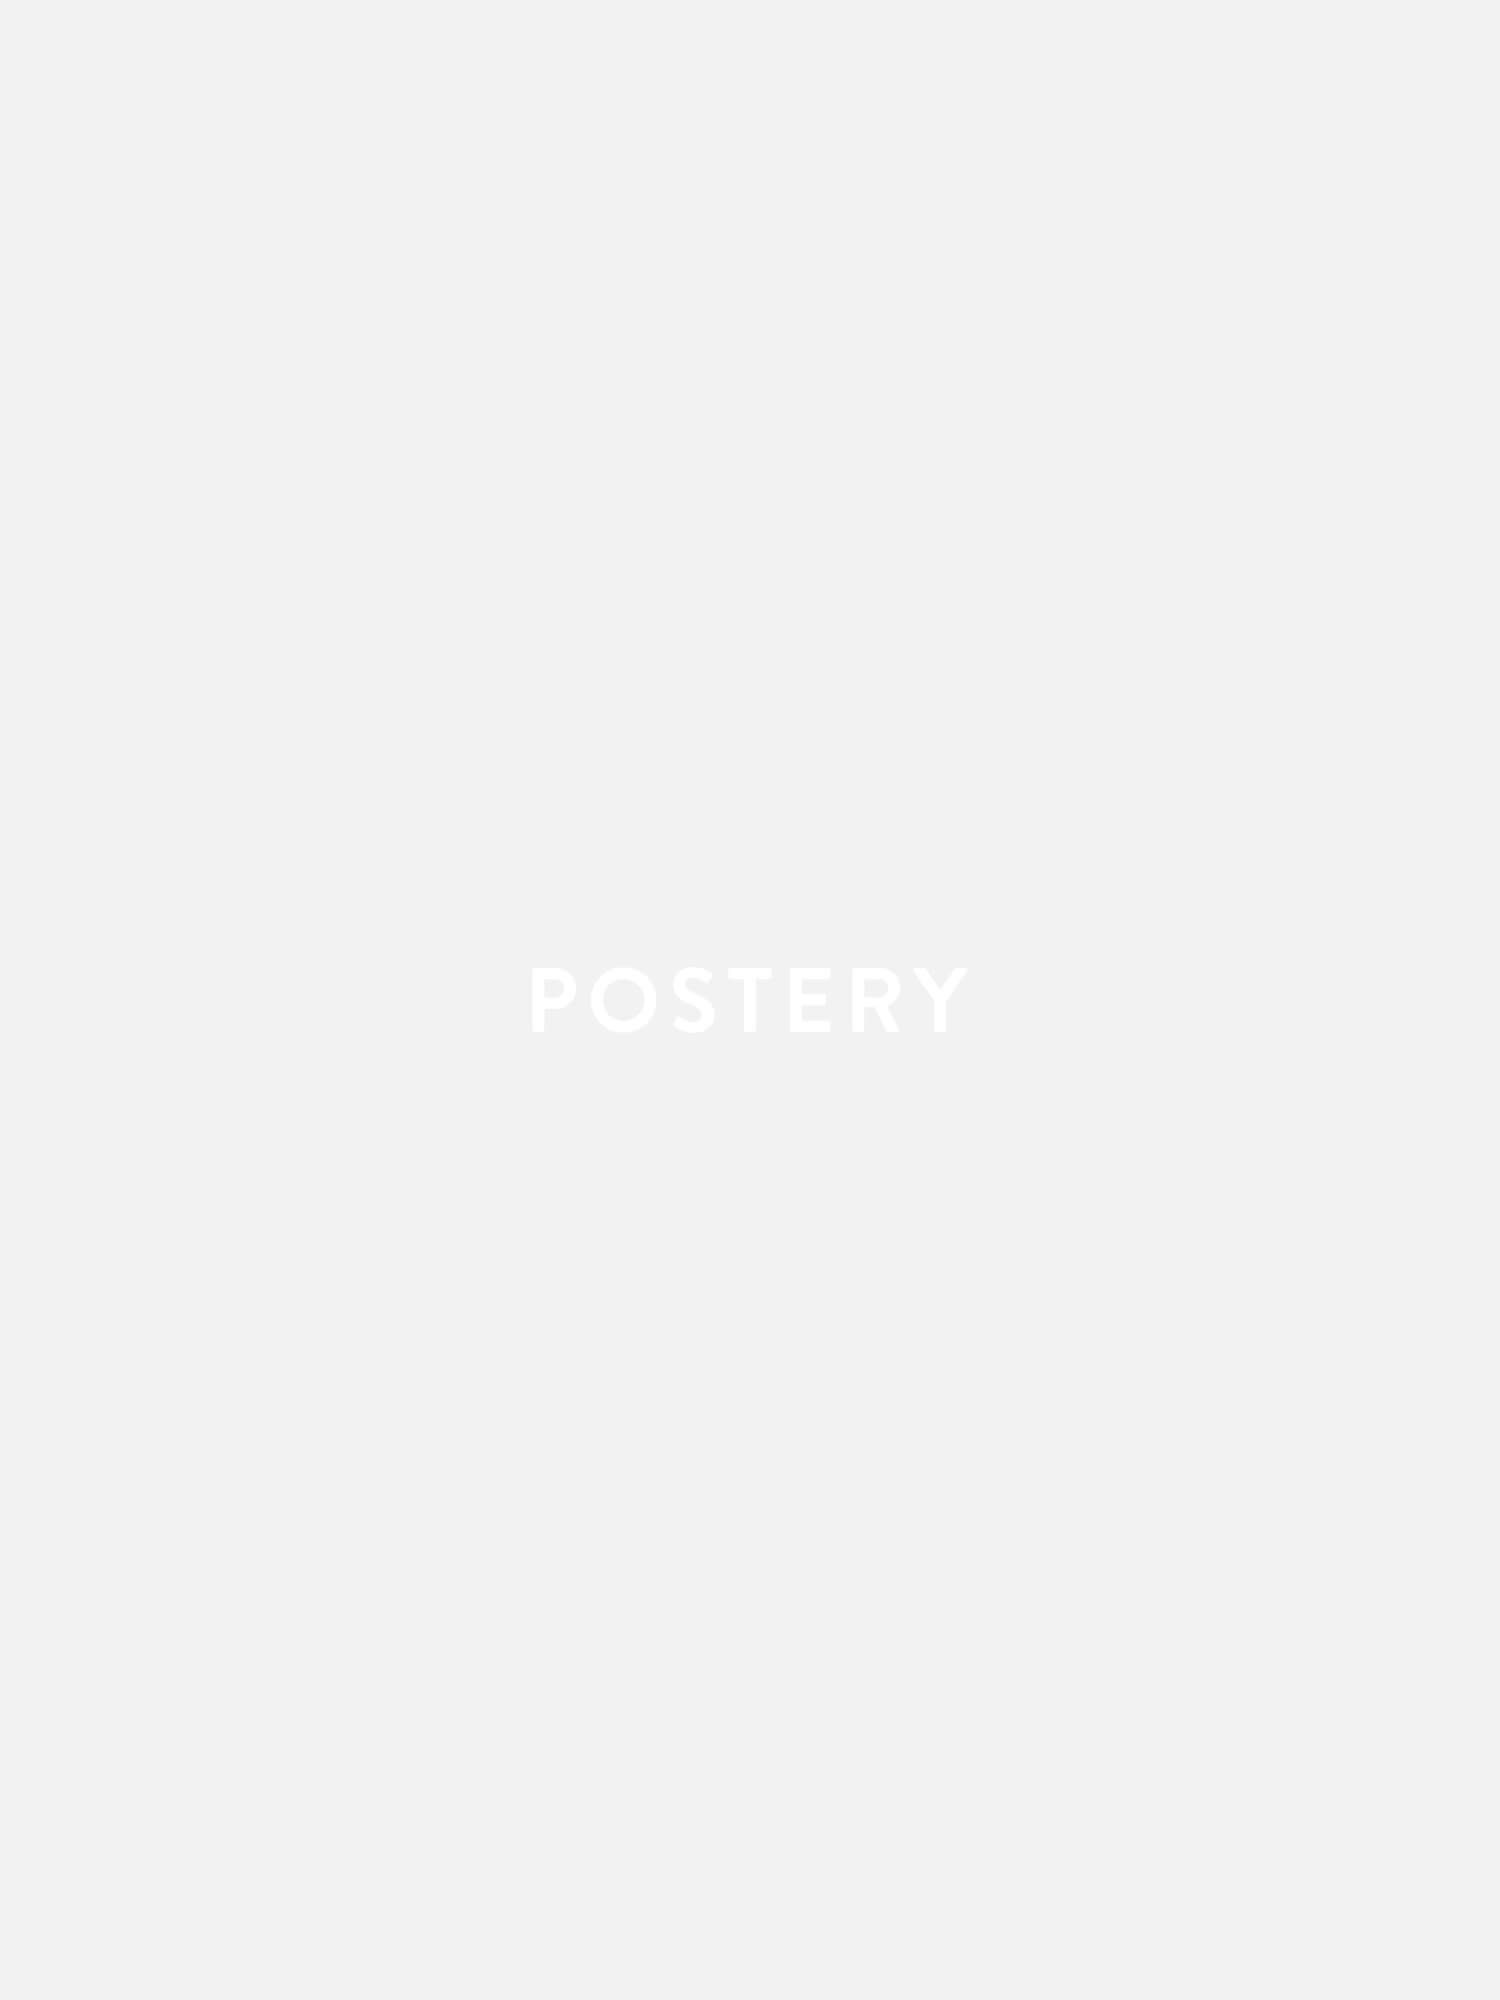 Wheat Straw no.2 Poster